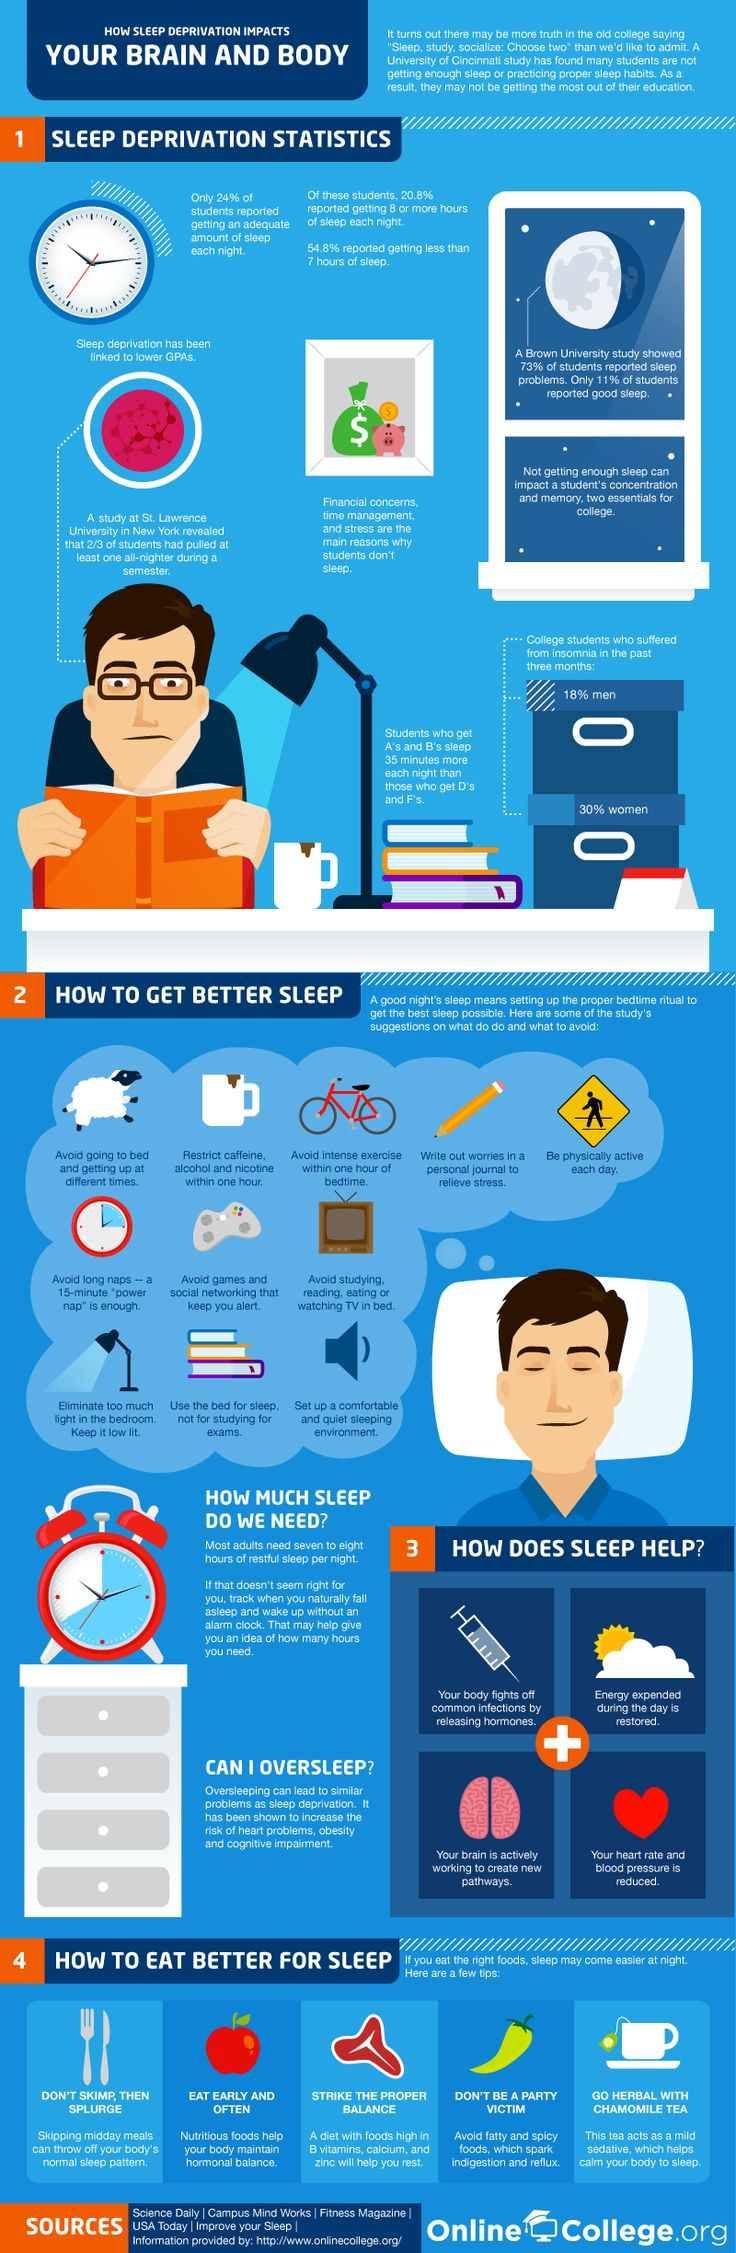 best Sleep Info Science images on Pinterest Insomnia help